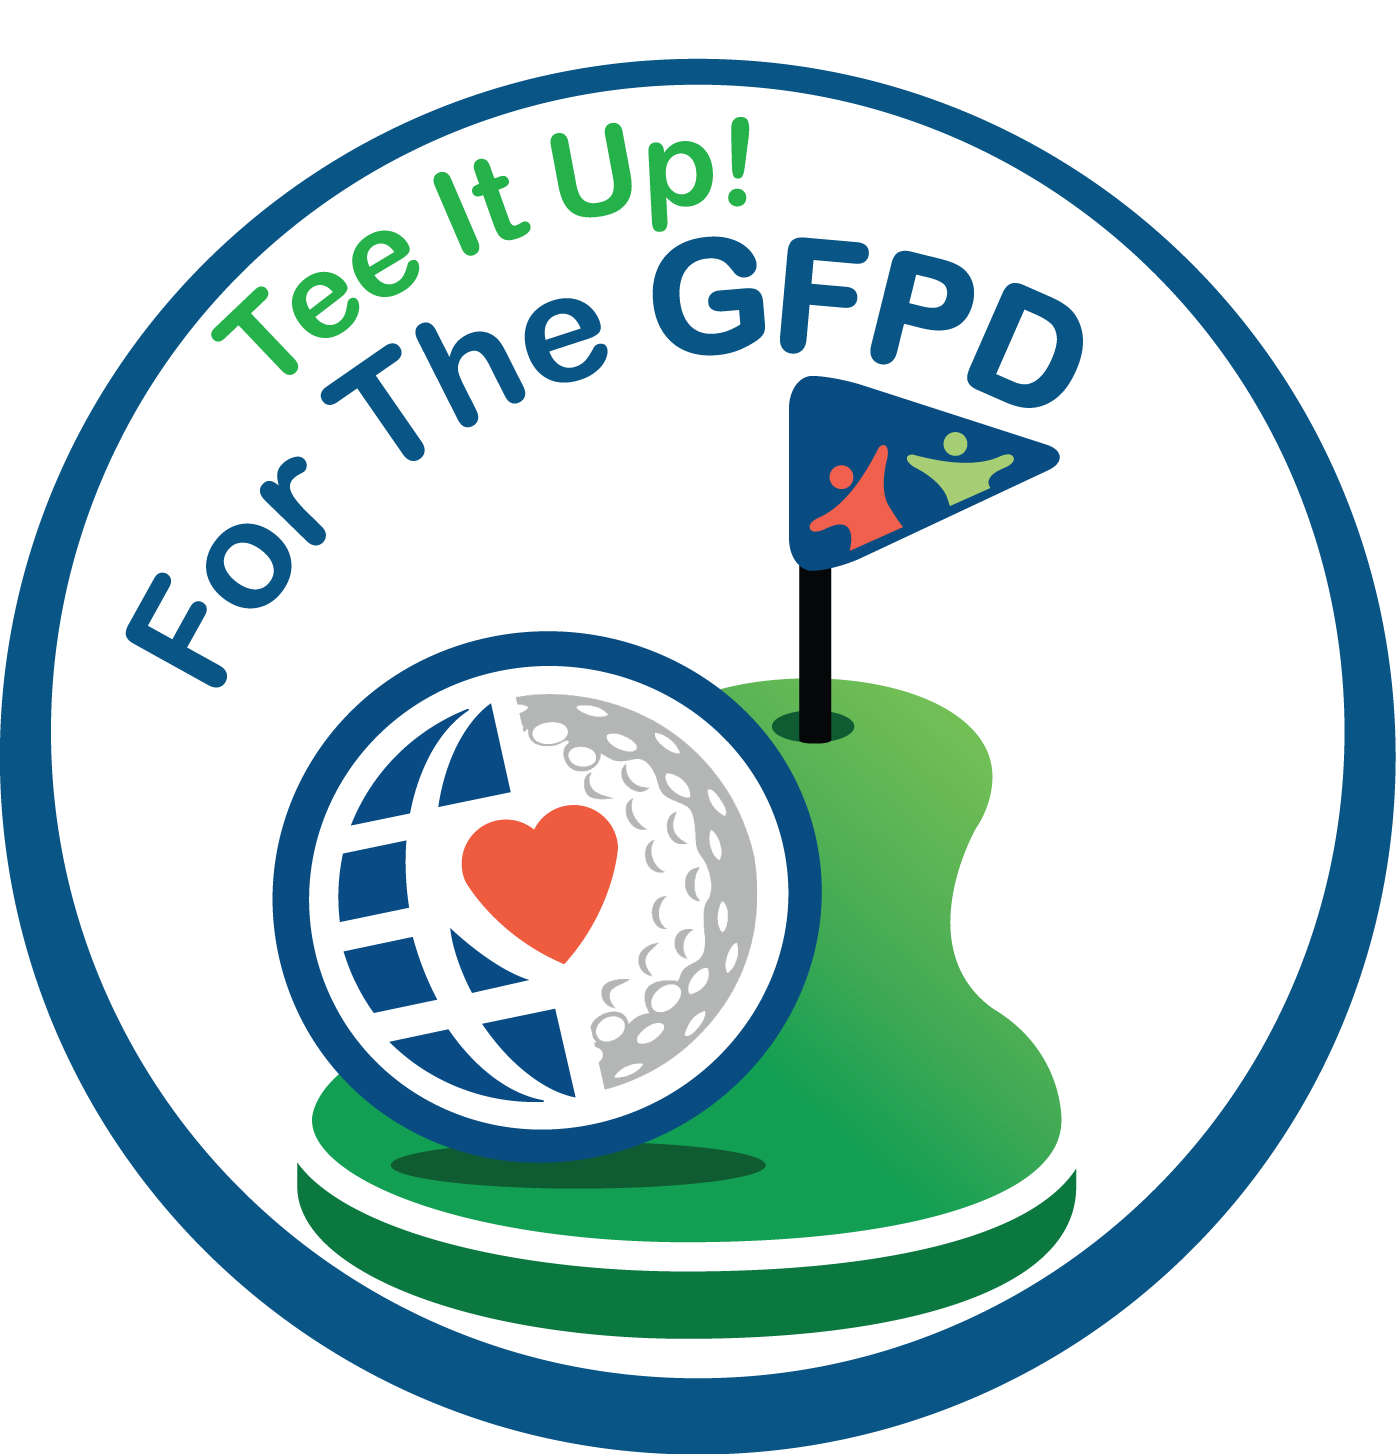 Final Logo - TeeItUp4GFPD (transparent).png